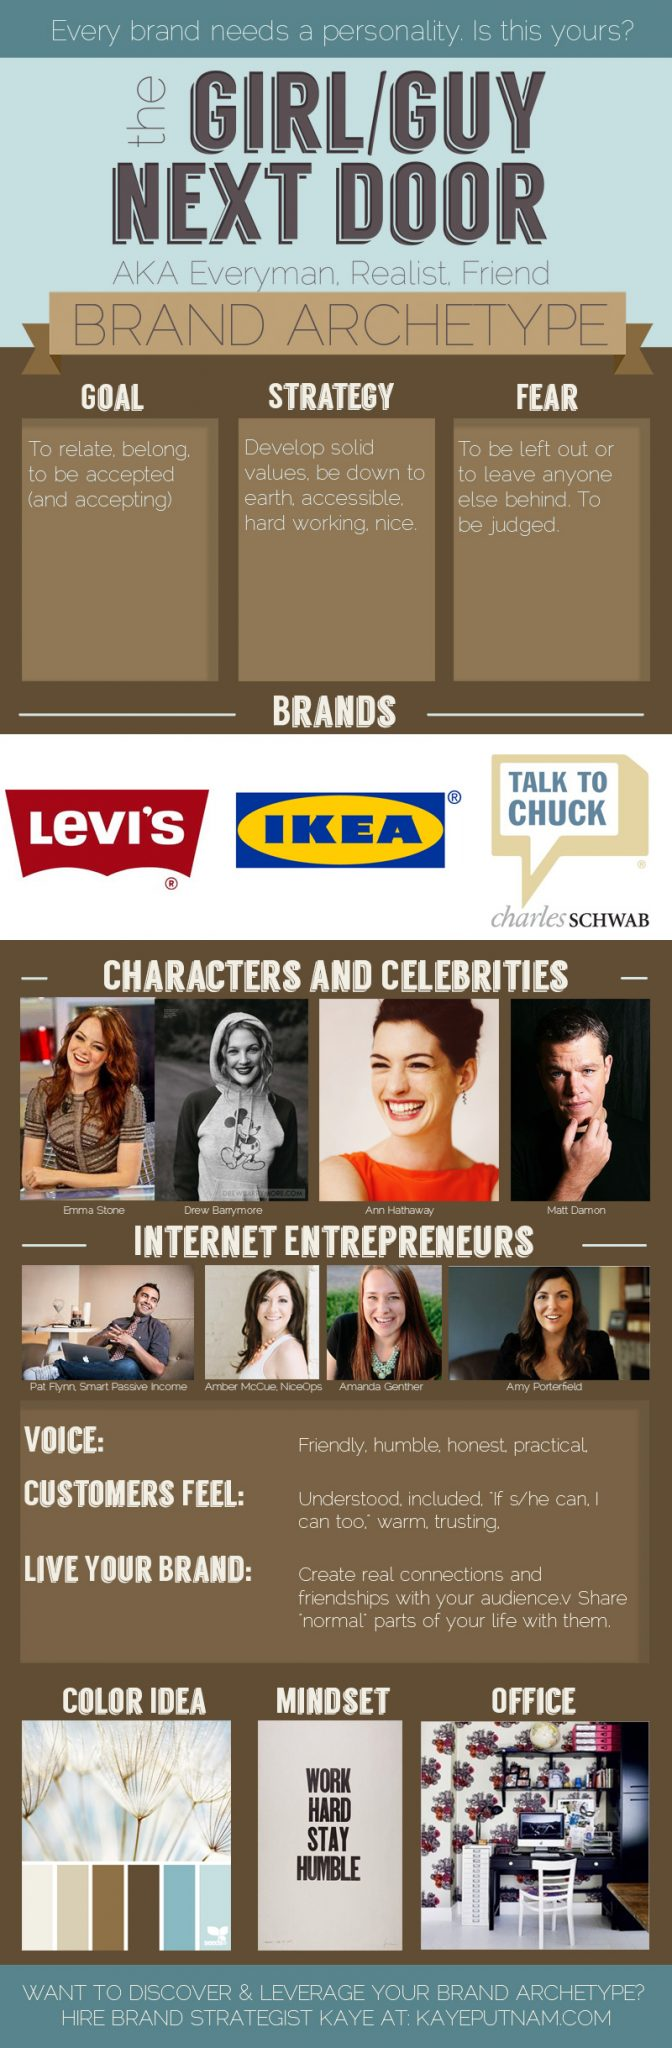 Girl/Guy Next Door Brand Archetype Infographic